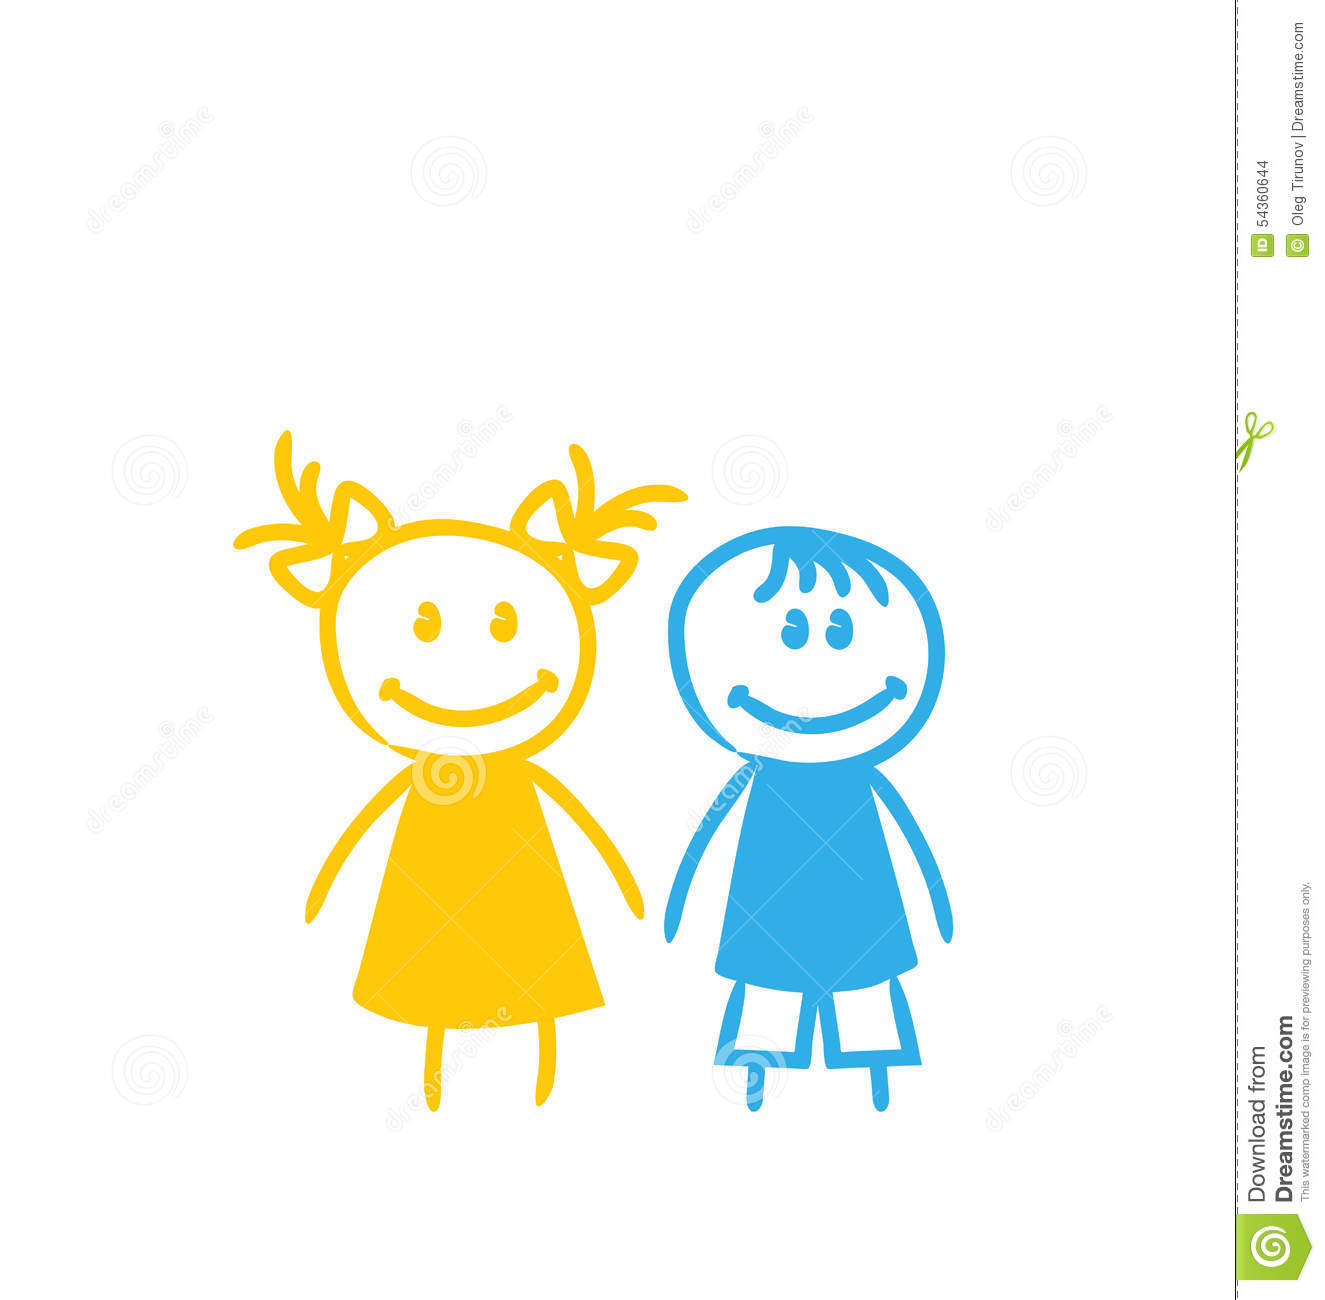 Illustration sketch cute funny girl and boy isolated on white background vector